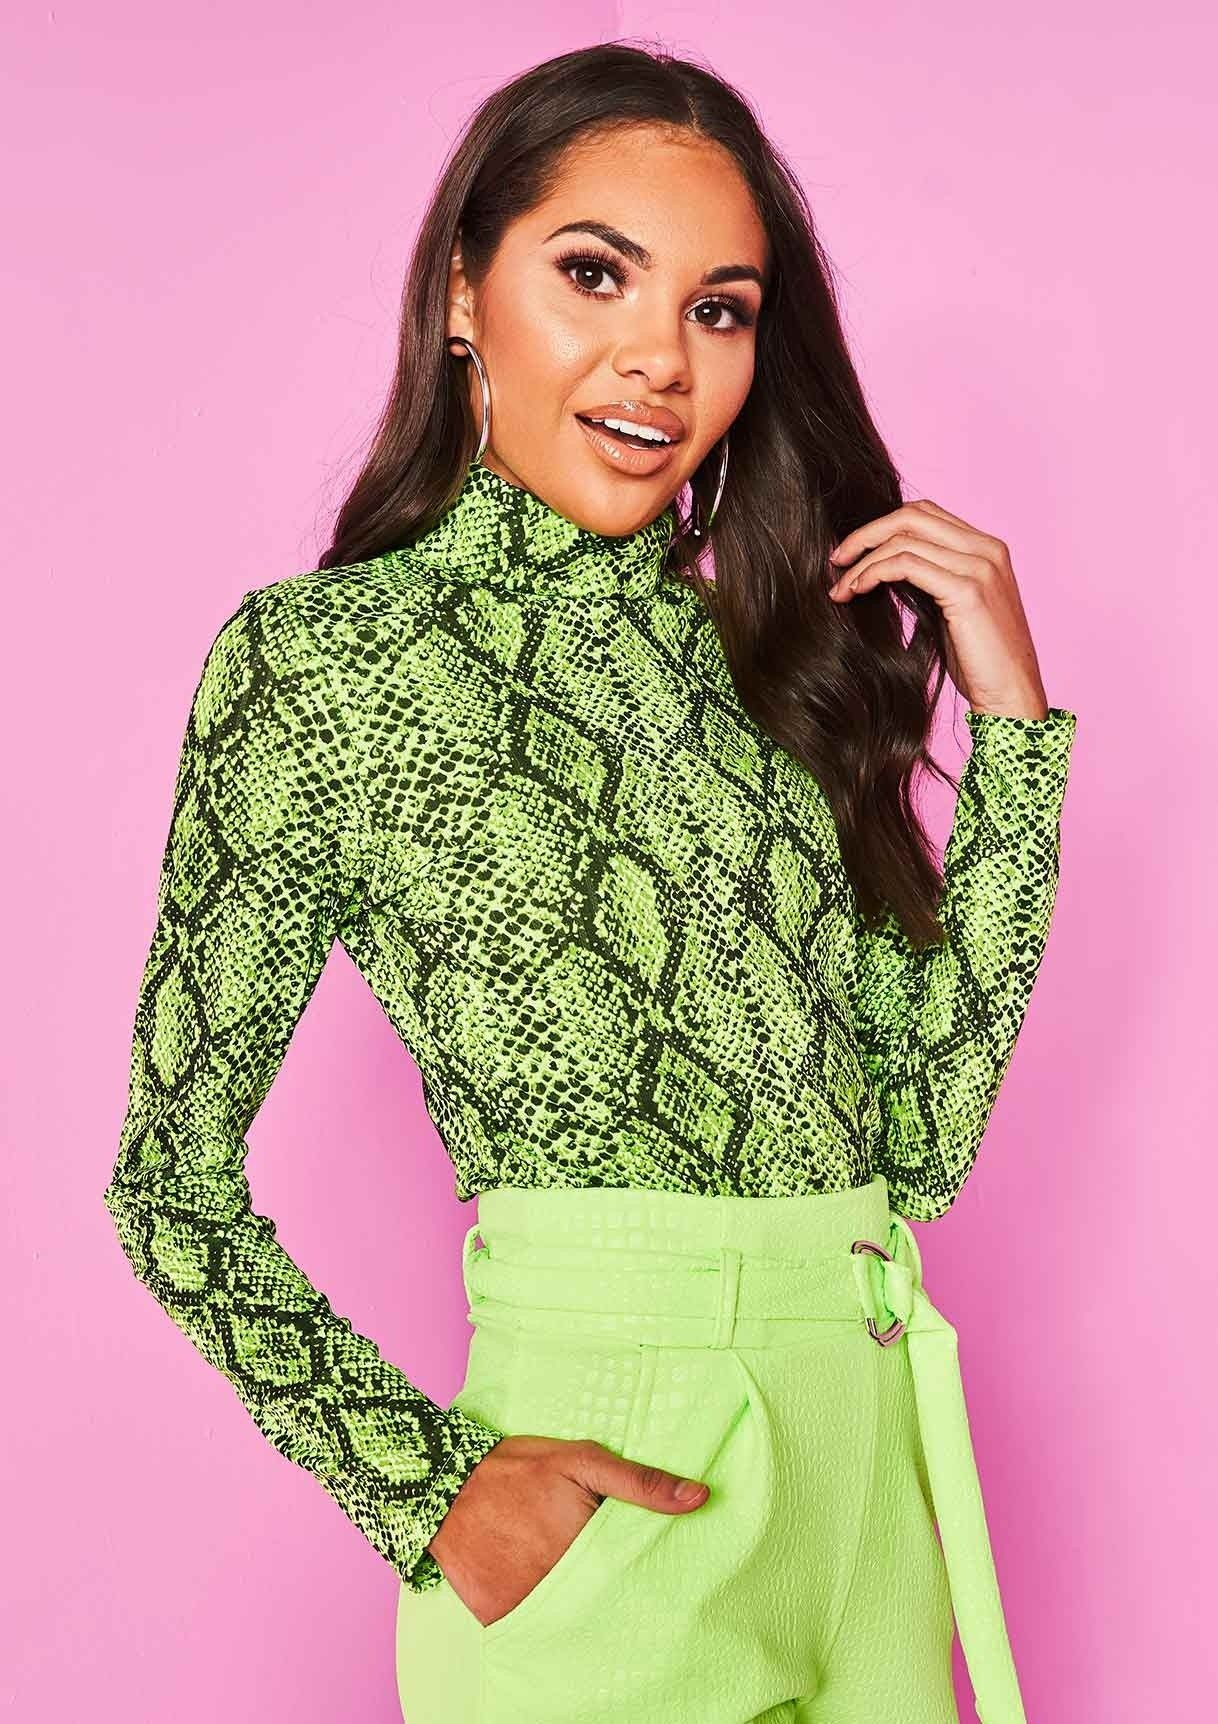 b8886960432 Yula Neon Green Snake Print High Neck Top in 2019 | ⚡ comin' in ...